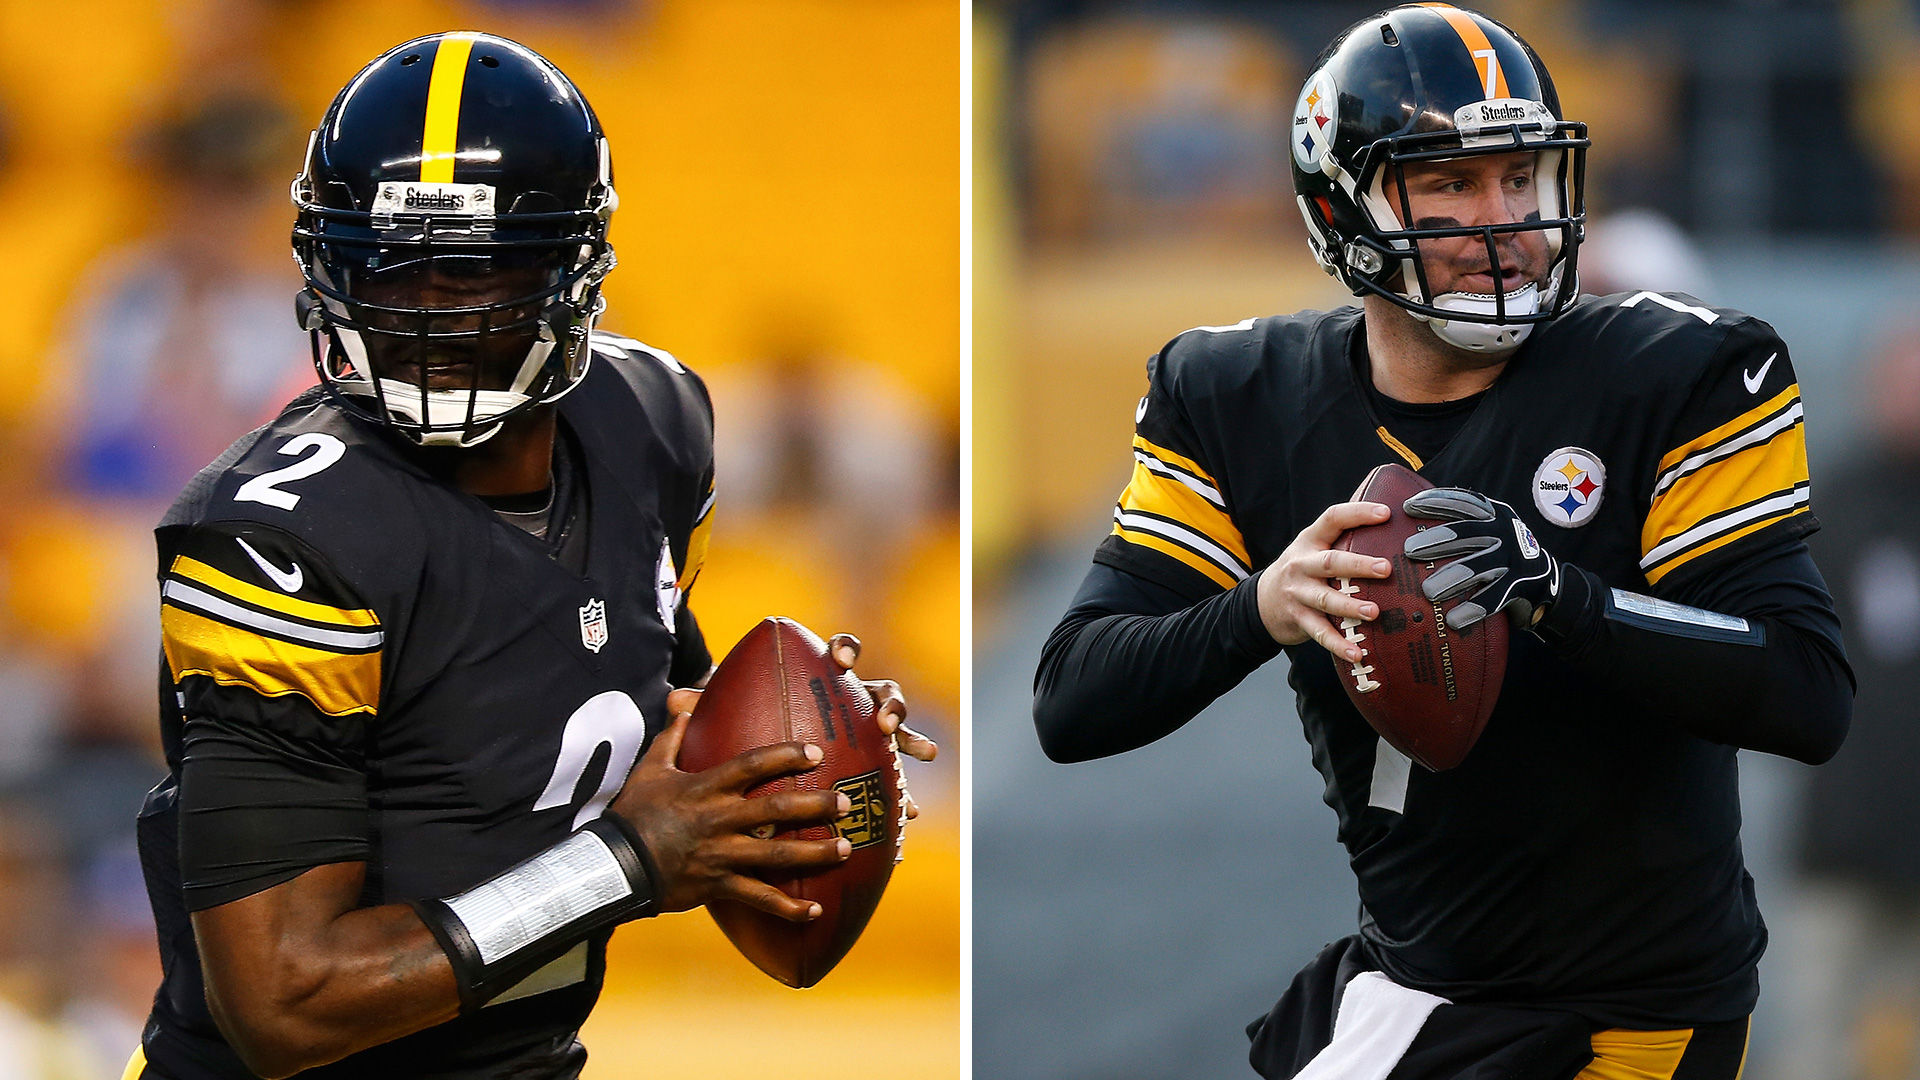 With Vick in for Roethlisberger, bookmakers adjust ...